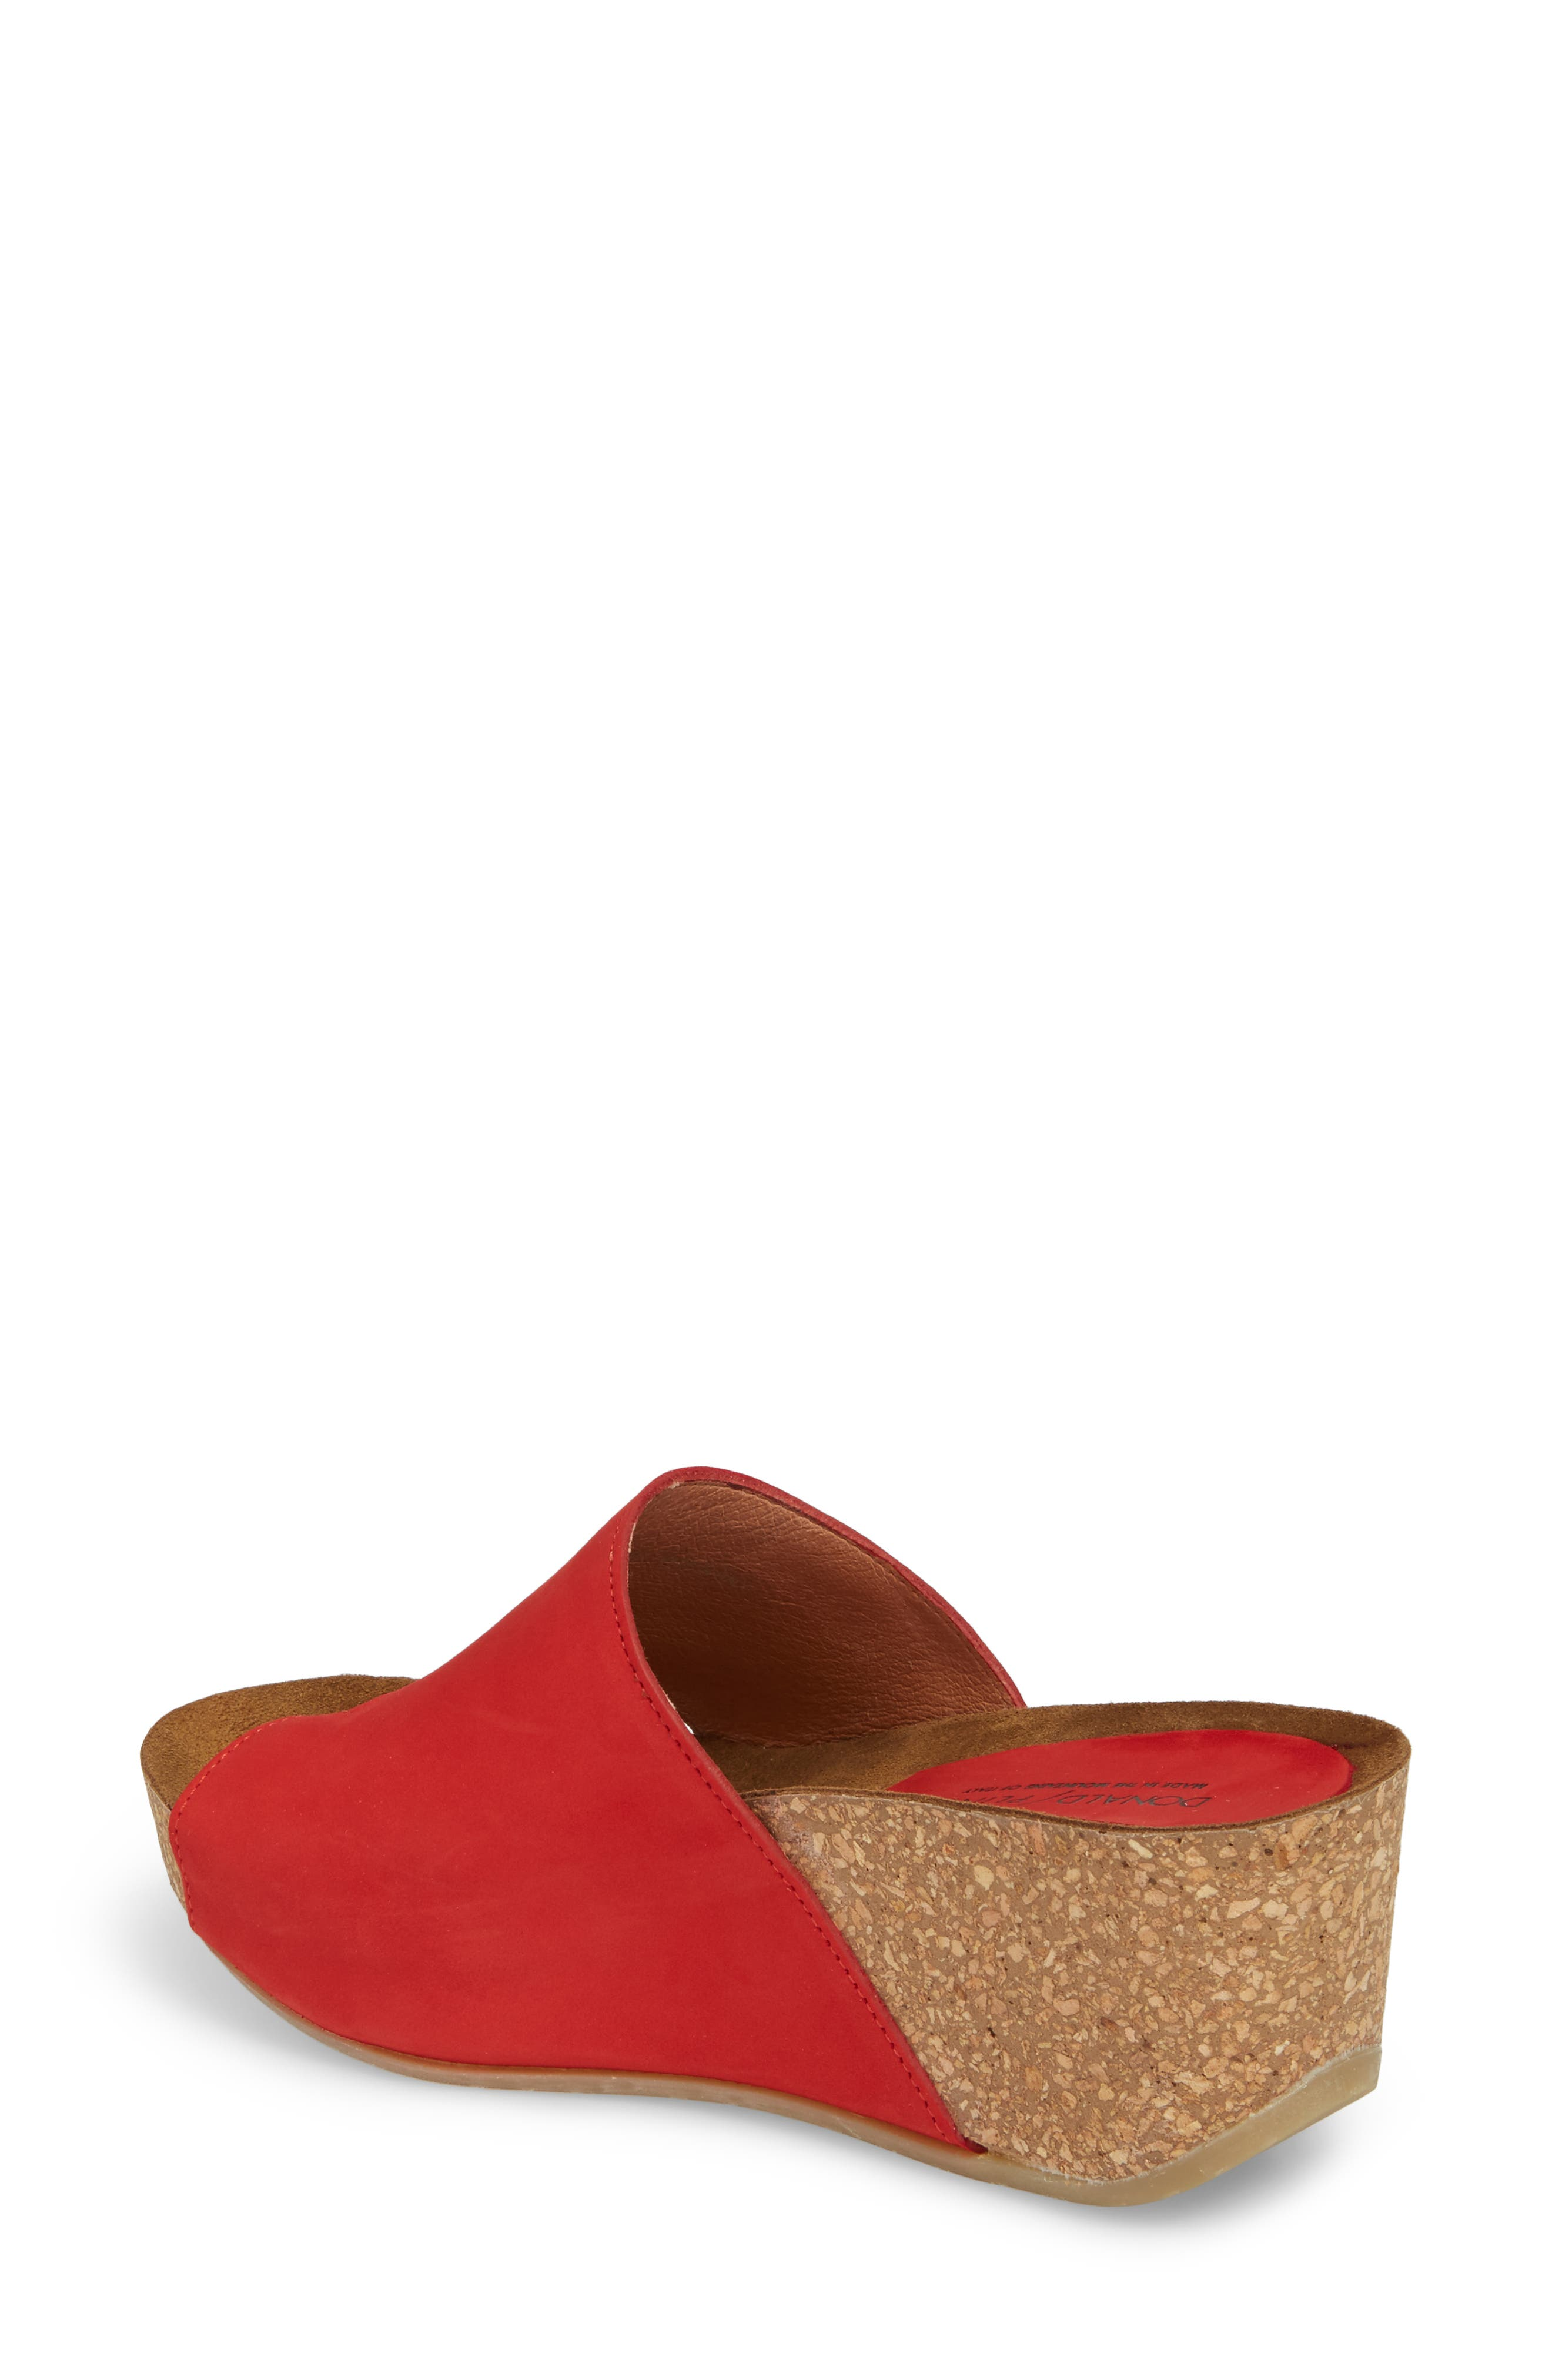 Donald J Pliner Ginie Platform Wedge Sandal,                             Alternate thumbnail 12, color,